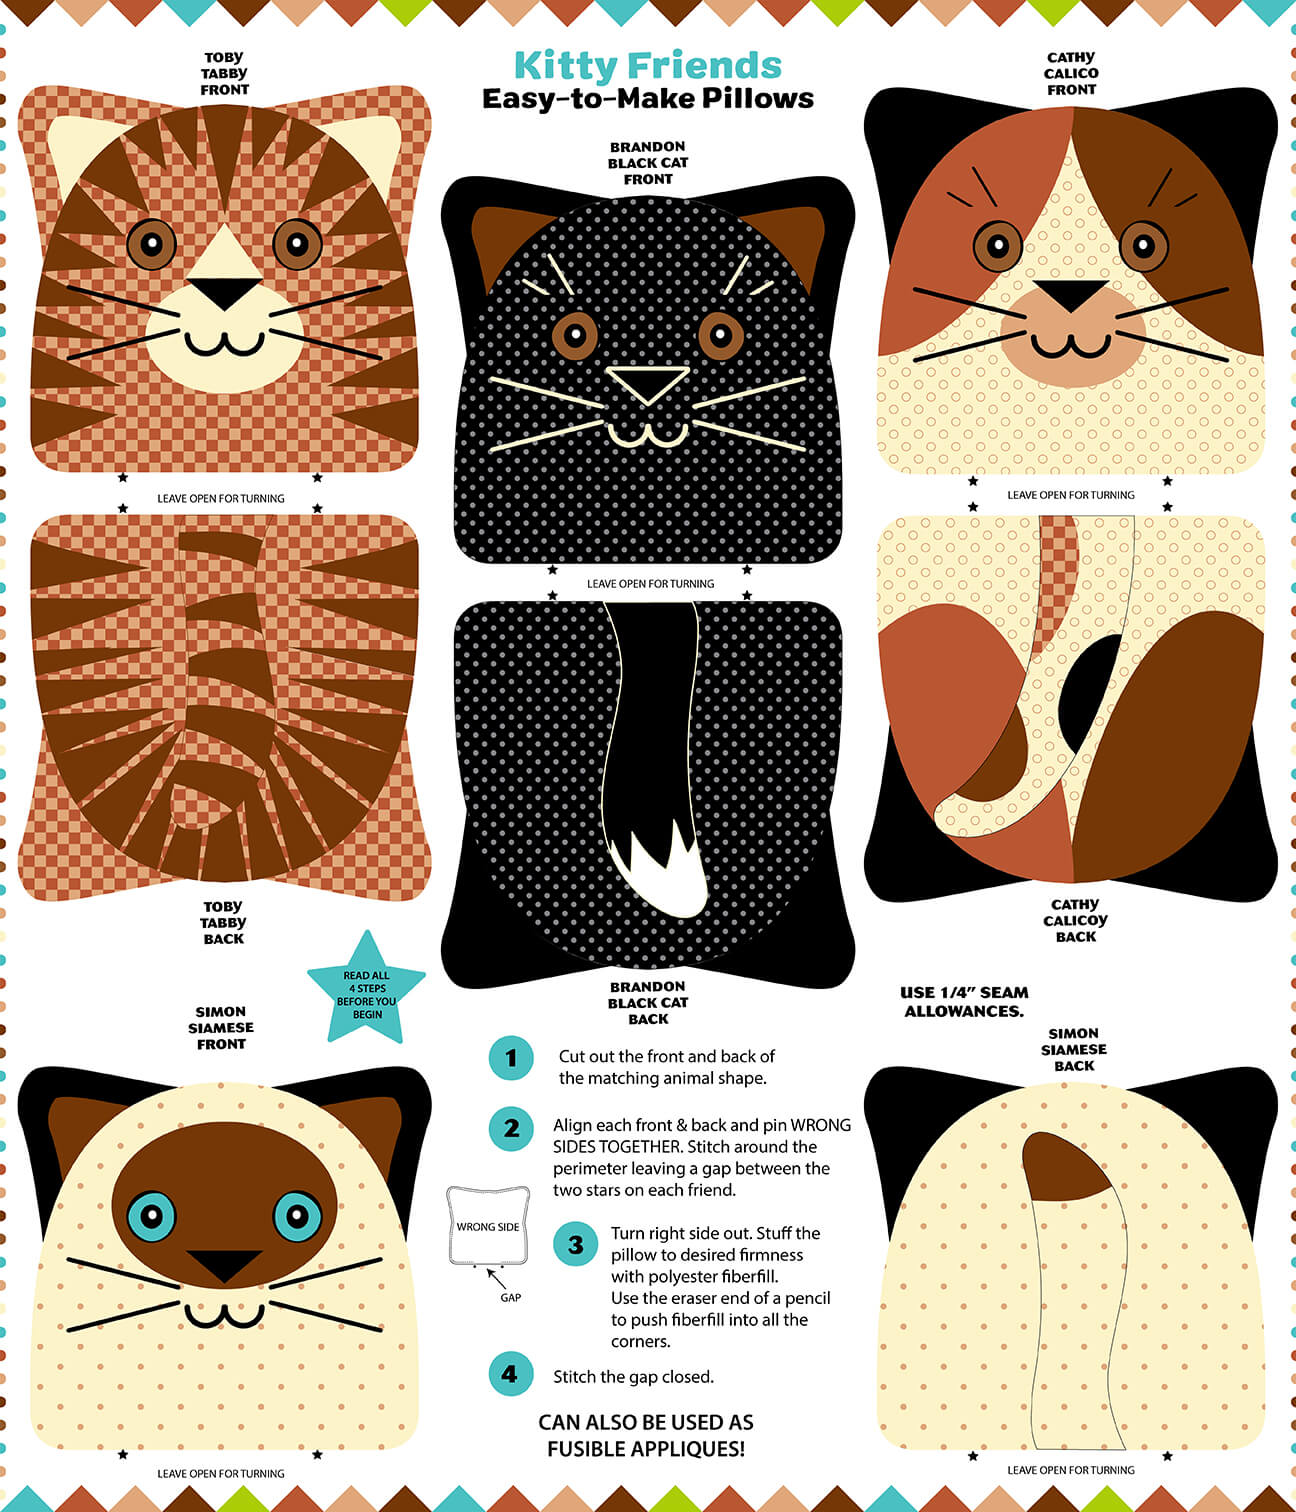 SNUGGLE PILLOWS KITTY FRIENDS 99679